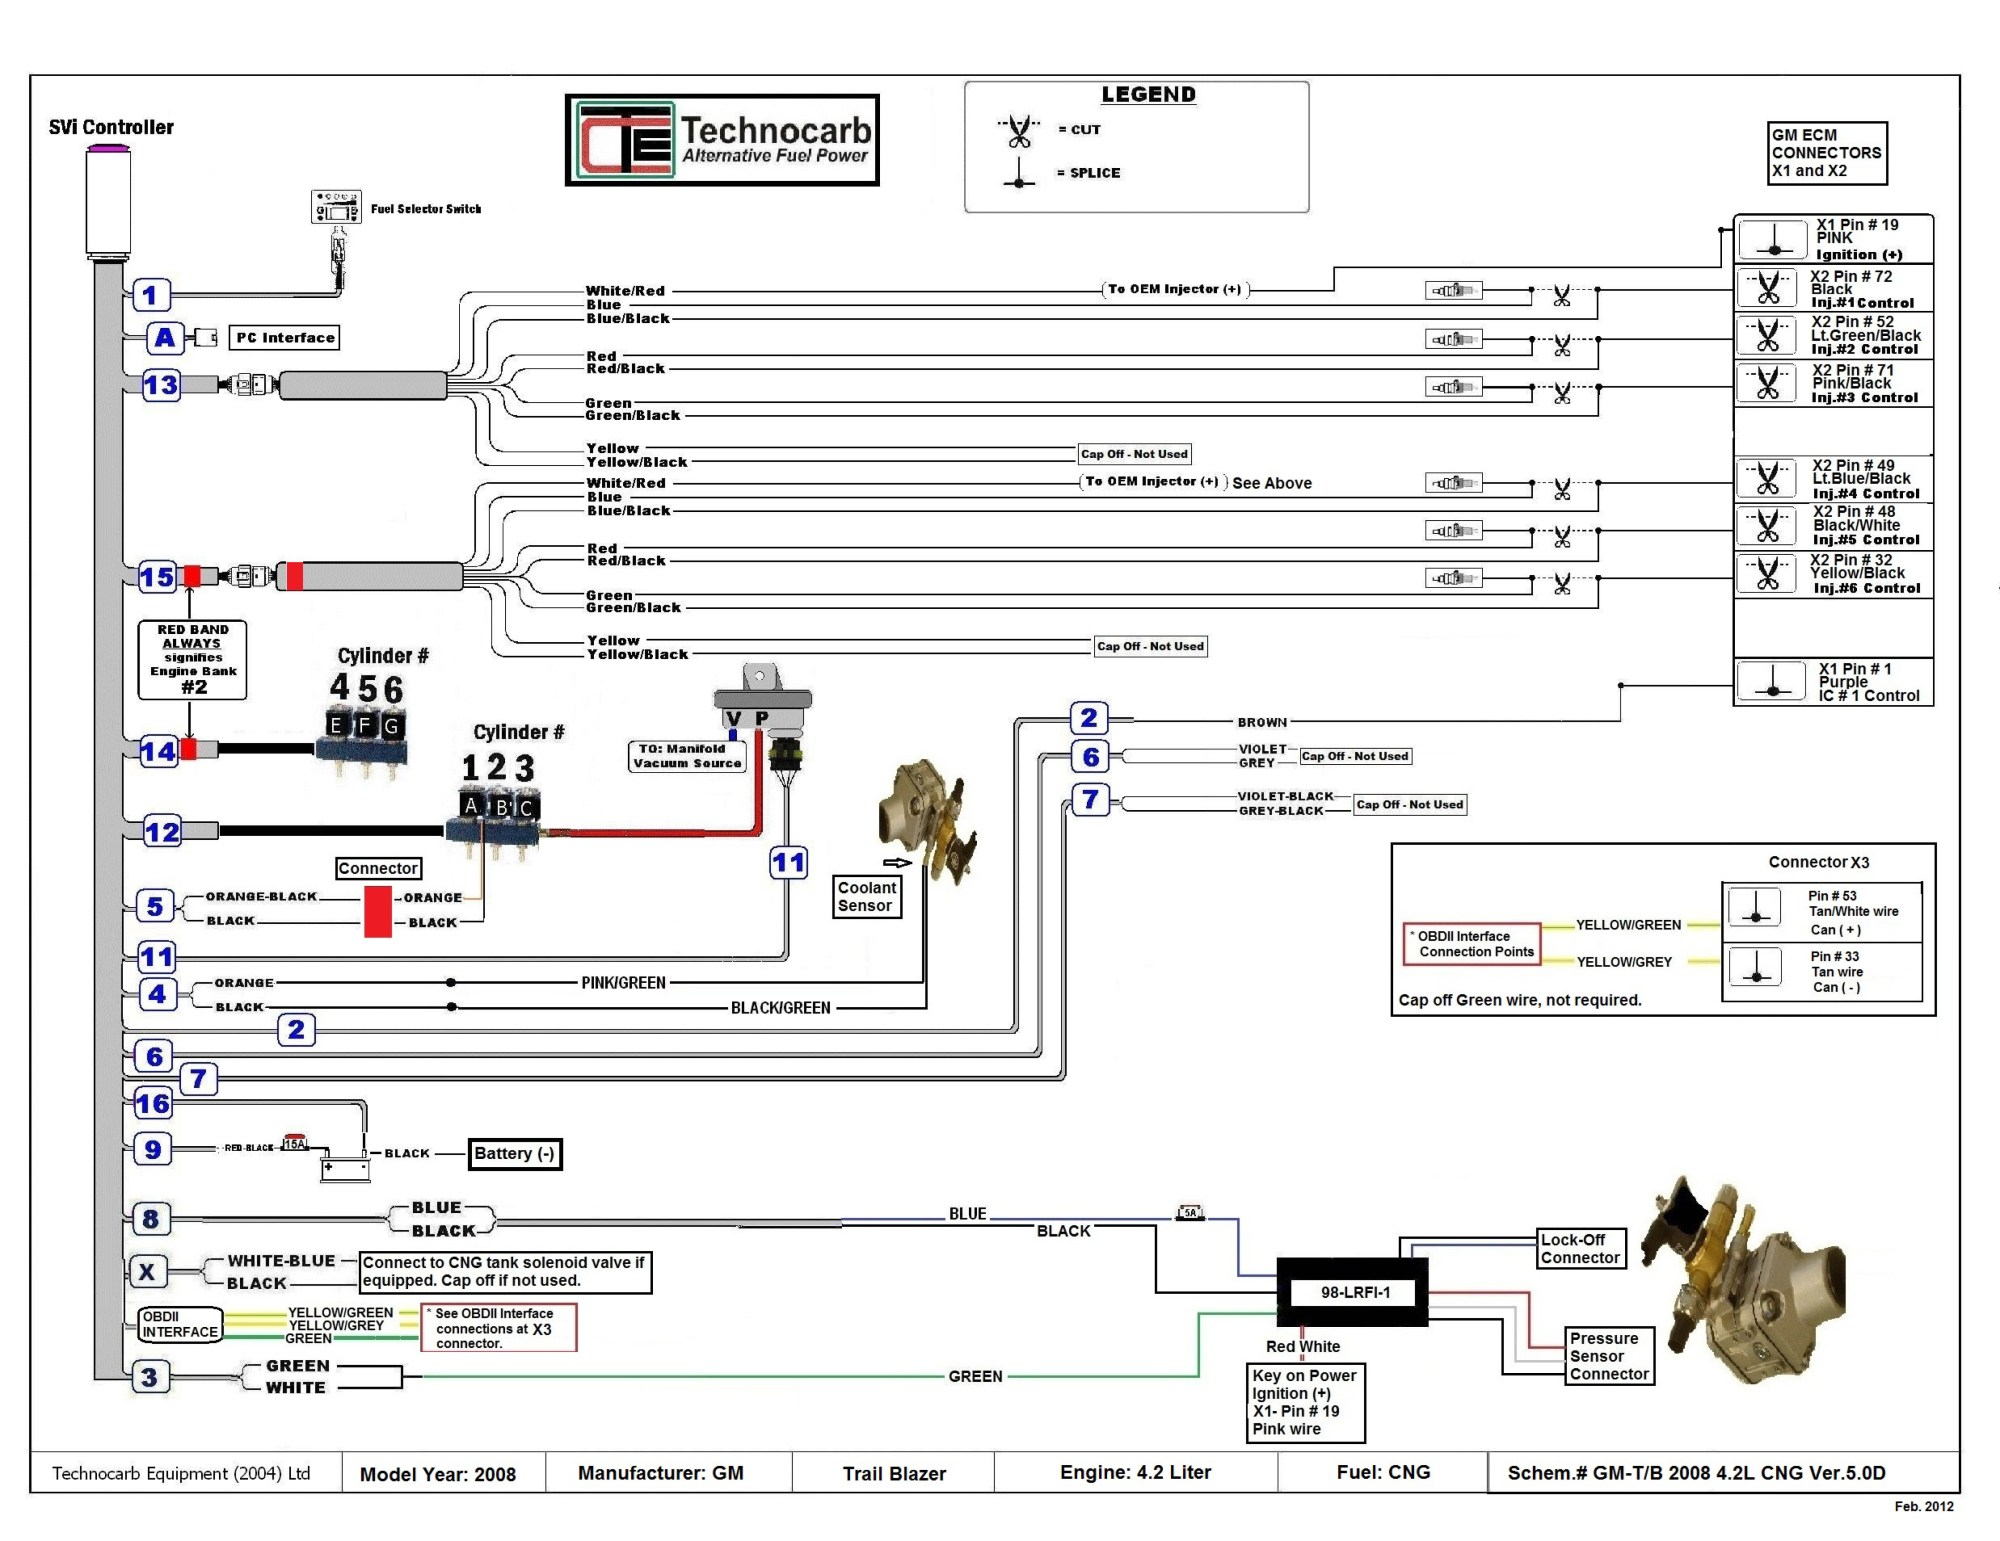 hight resolution of 06 envoy wiring diagram wiring library hvac wiring diagram for 2003 gmc envoy 04 envoy wiring diagram